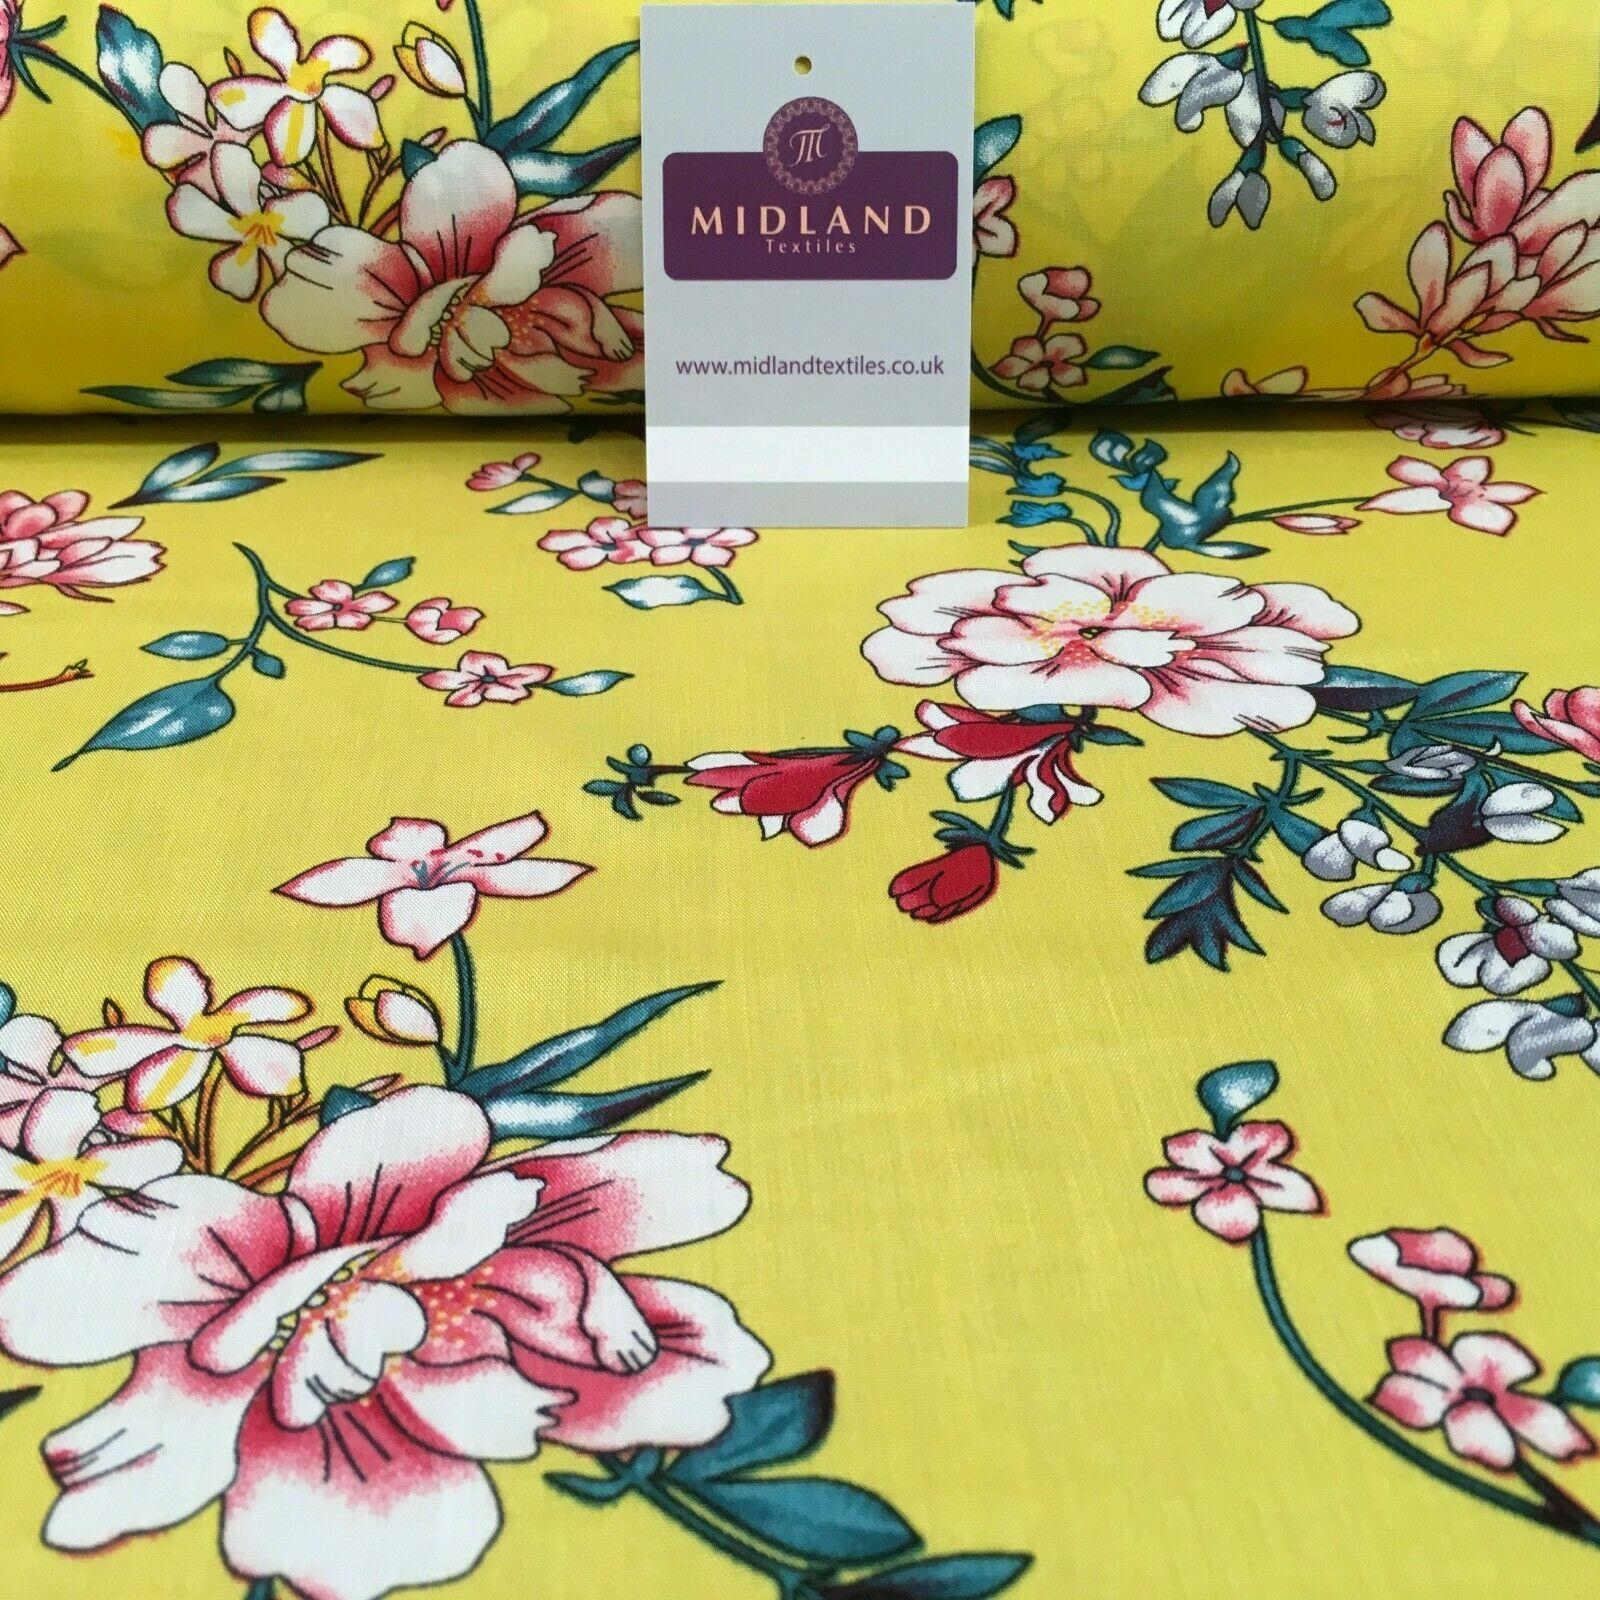 Floral Printed Rayon Viscose Dress Fabric 143cm Wide MA1174 Mtex